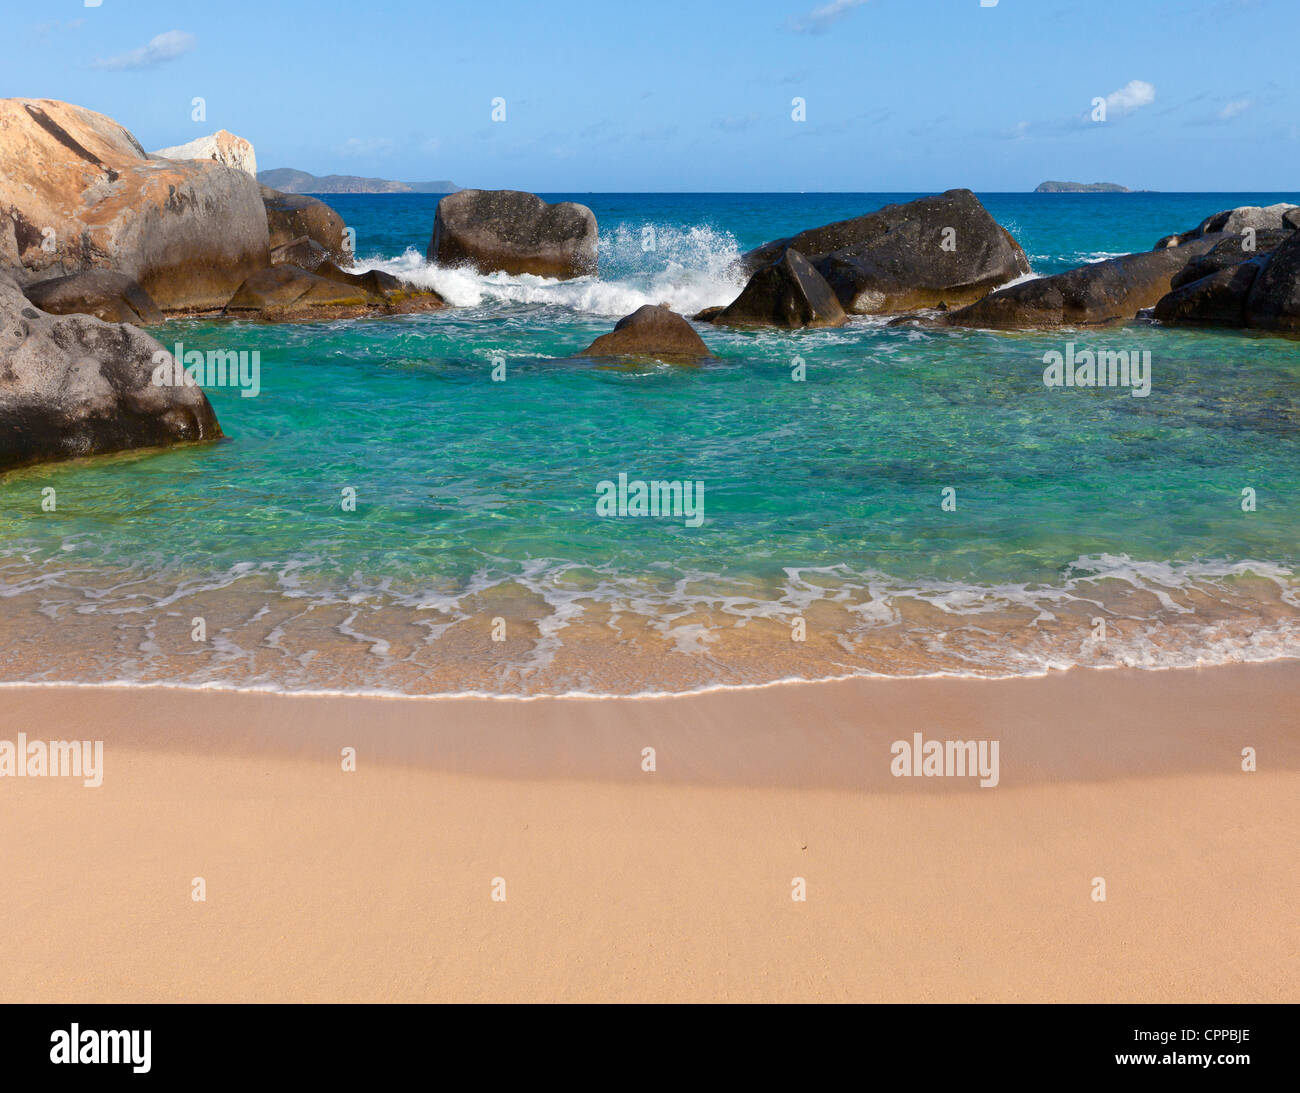 Virgin Gorda, British Virgin Islands in the Caribbean Protected pool among the granite boulders on the beach known - Stock Image